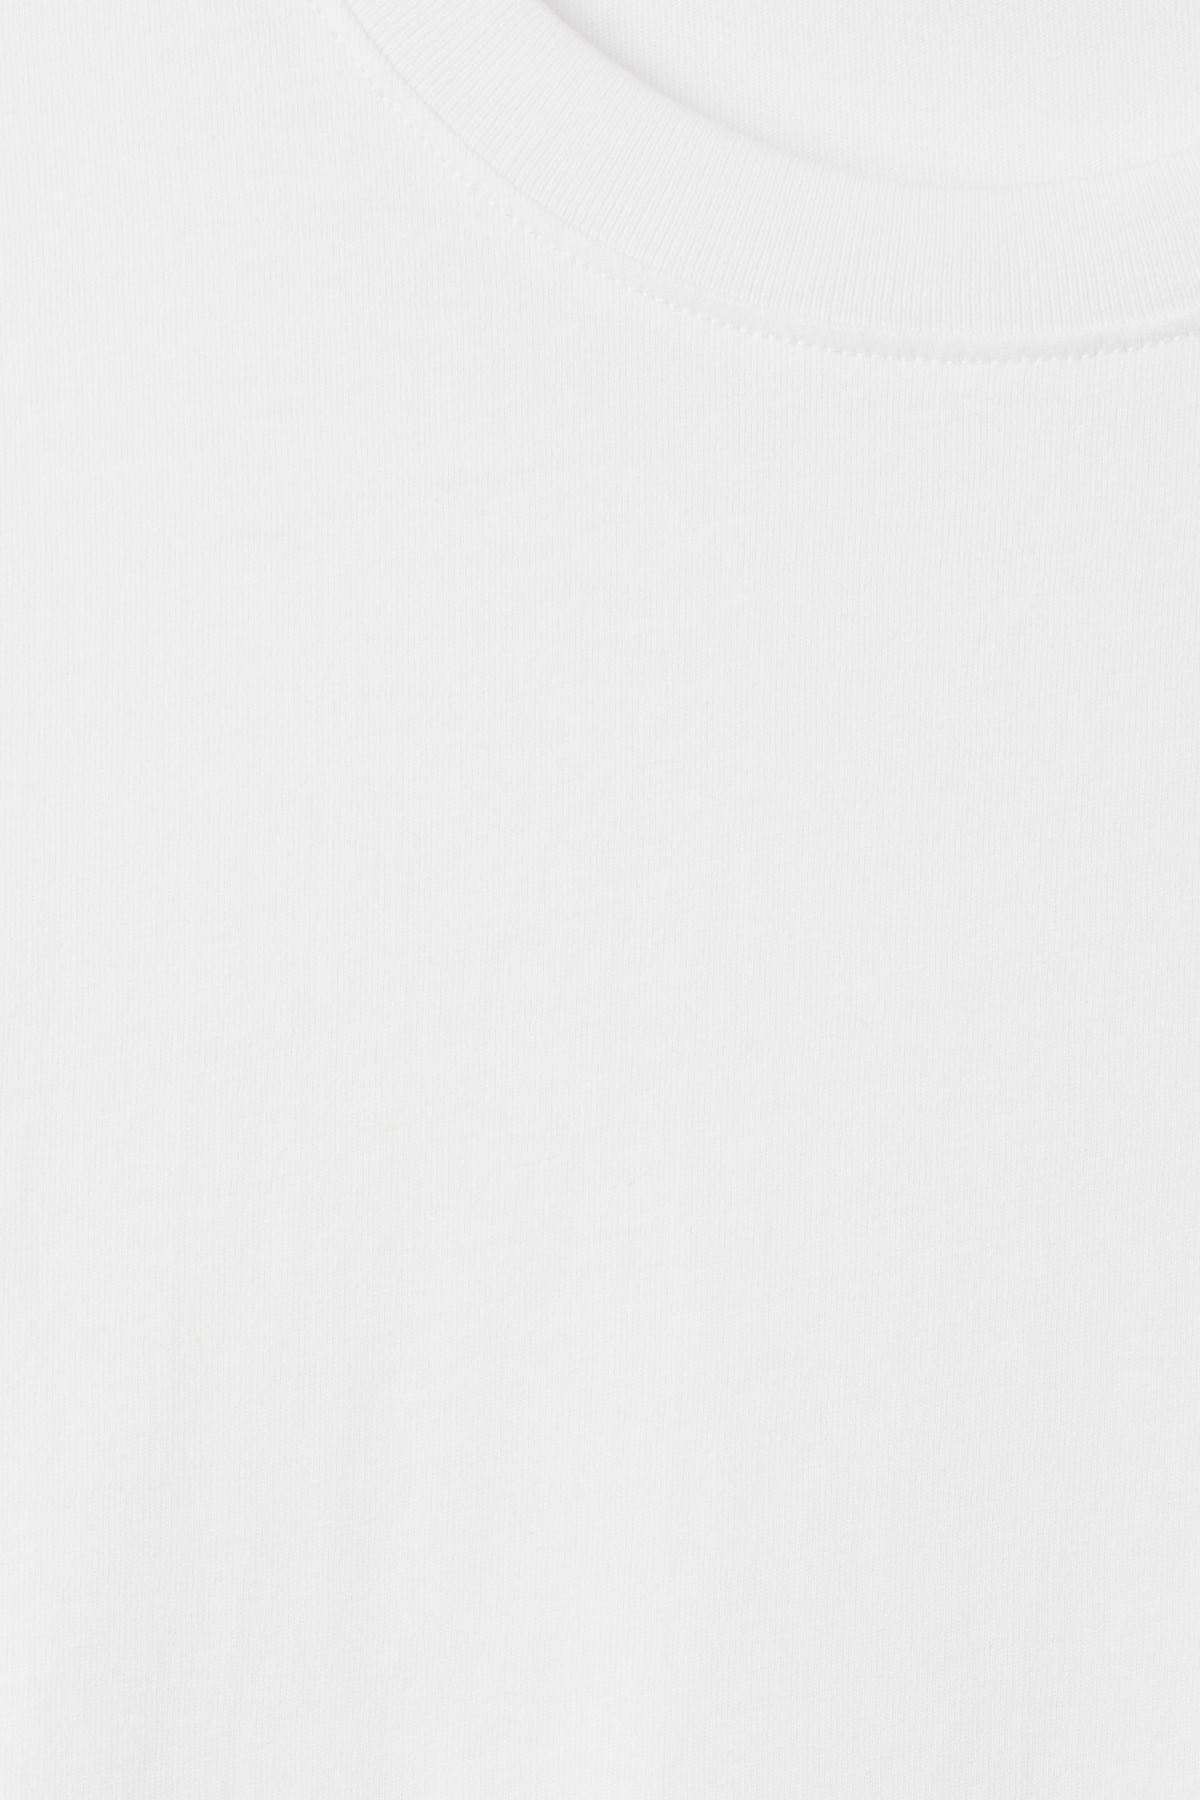 Detailed image of Weekday lille long t-shirts in white